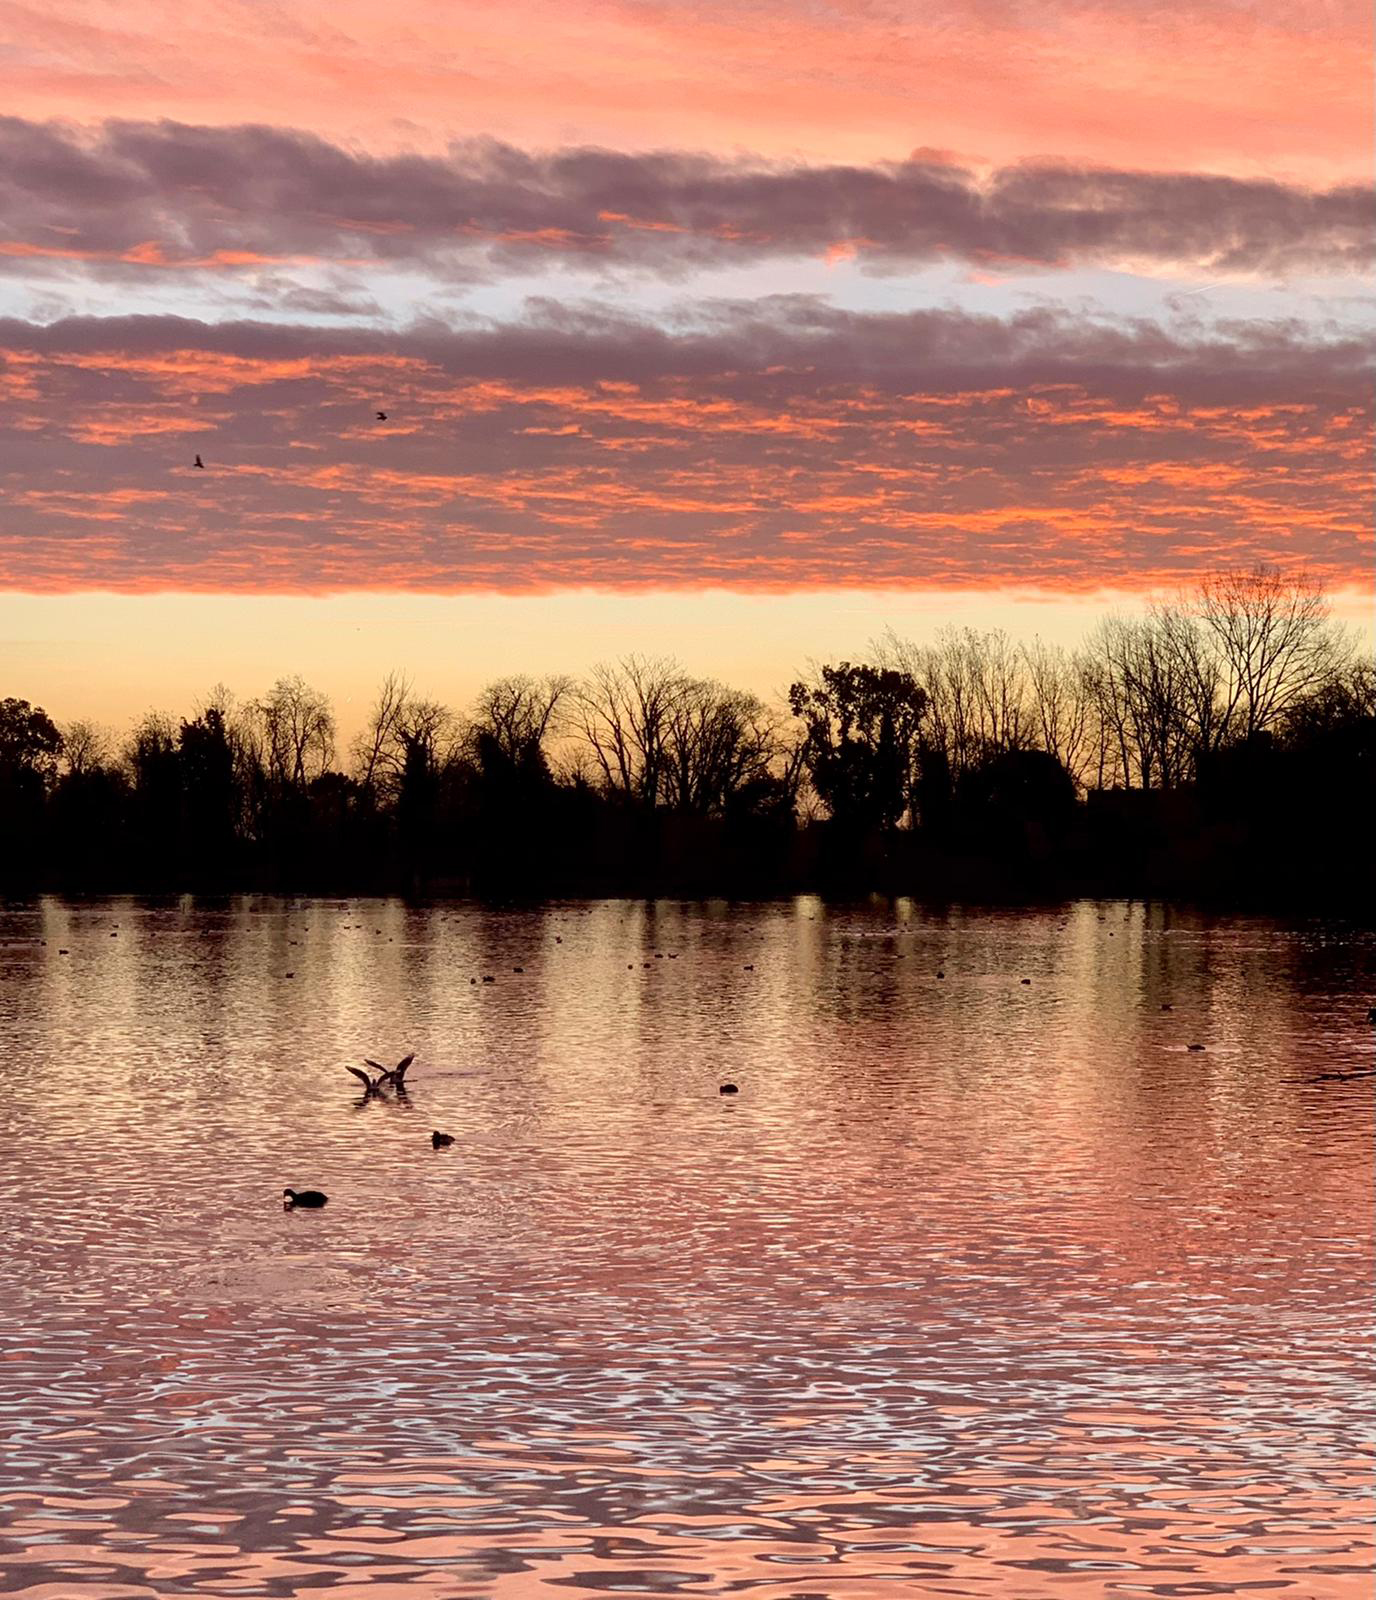 A spectacular sunrise over Connaught Water in Epping Forest, winter 2020